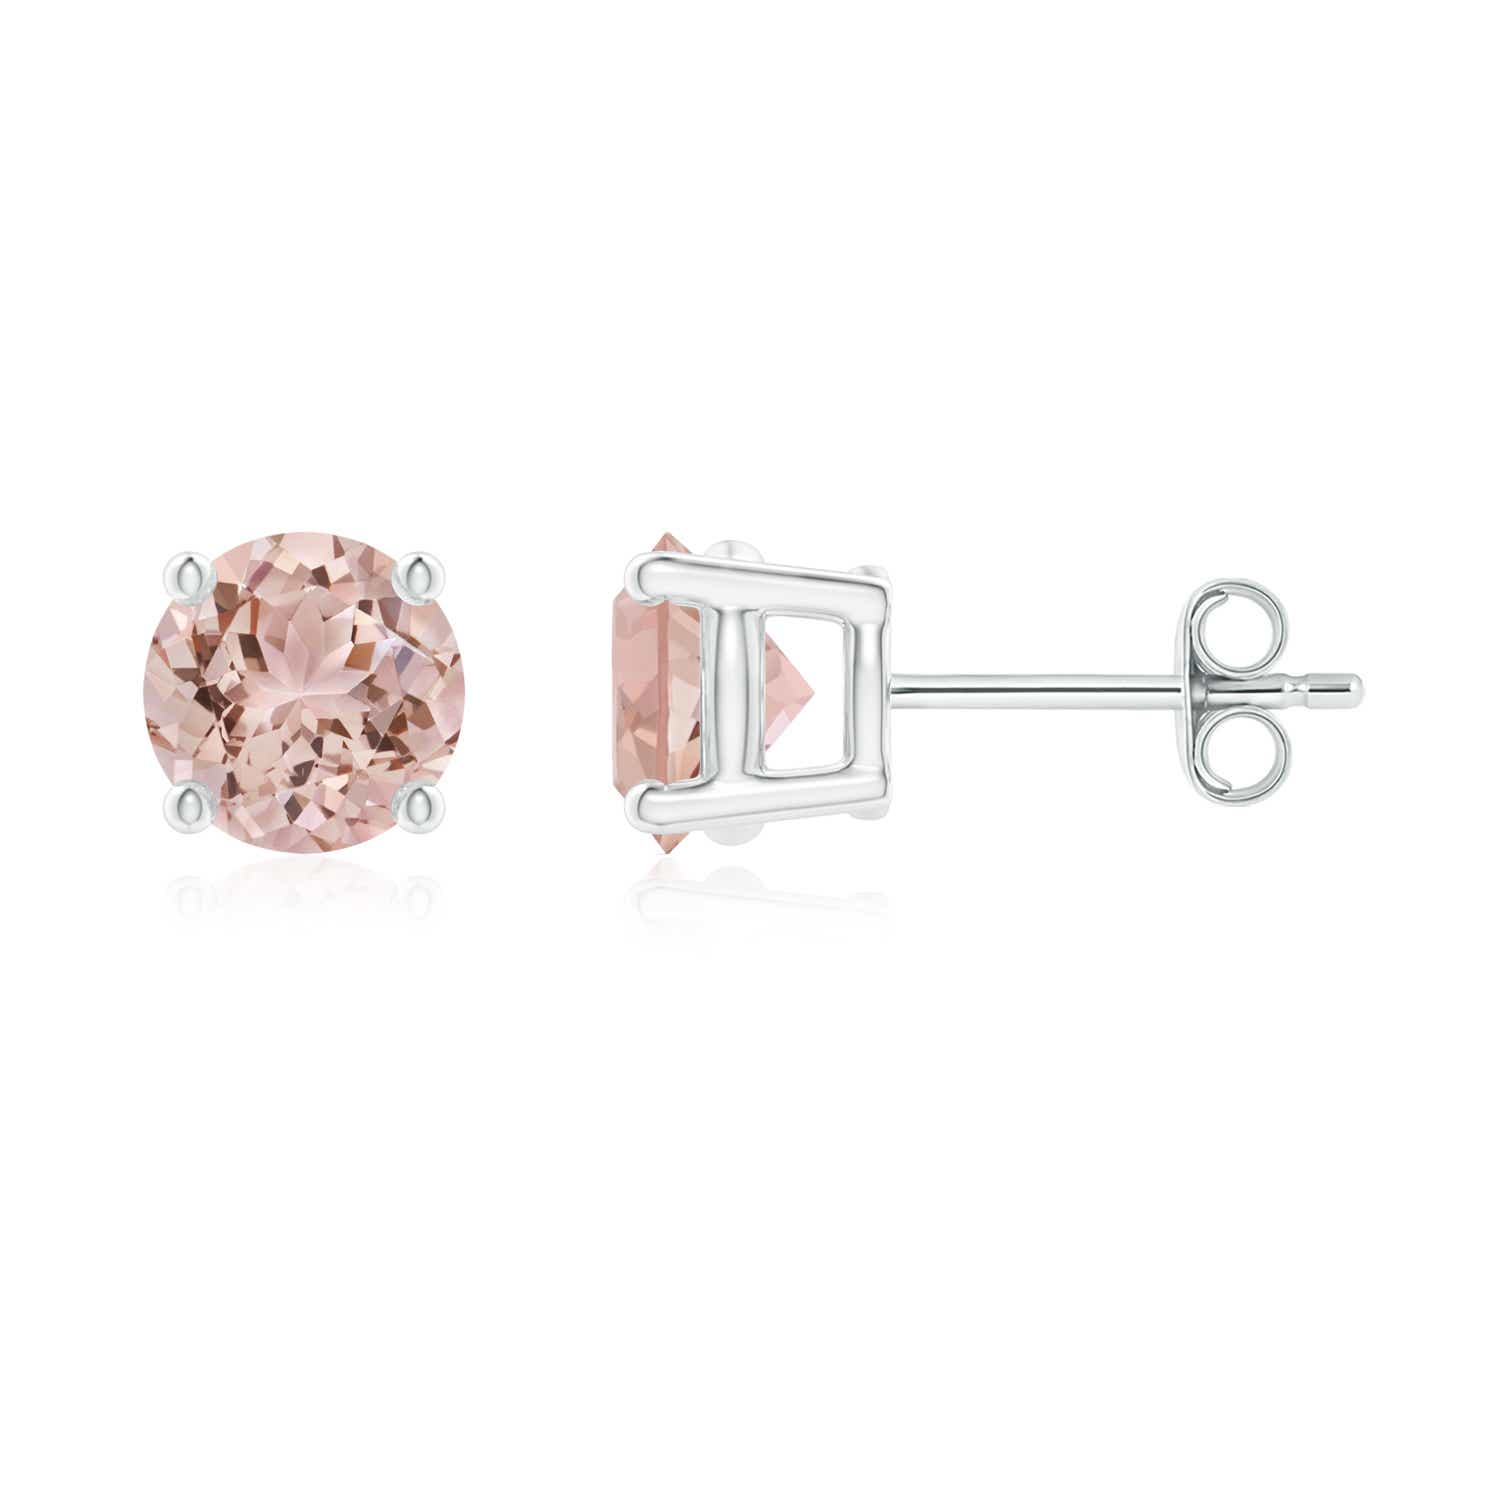 gold stud rose carat morganite salmon earring prodetail in buy pink